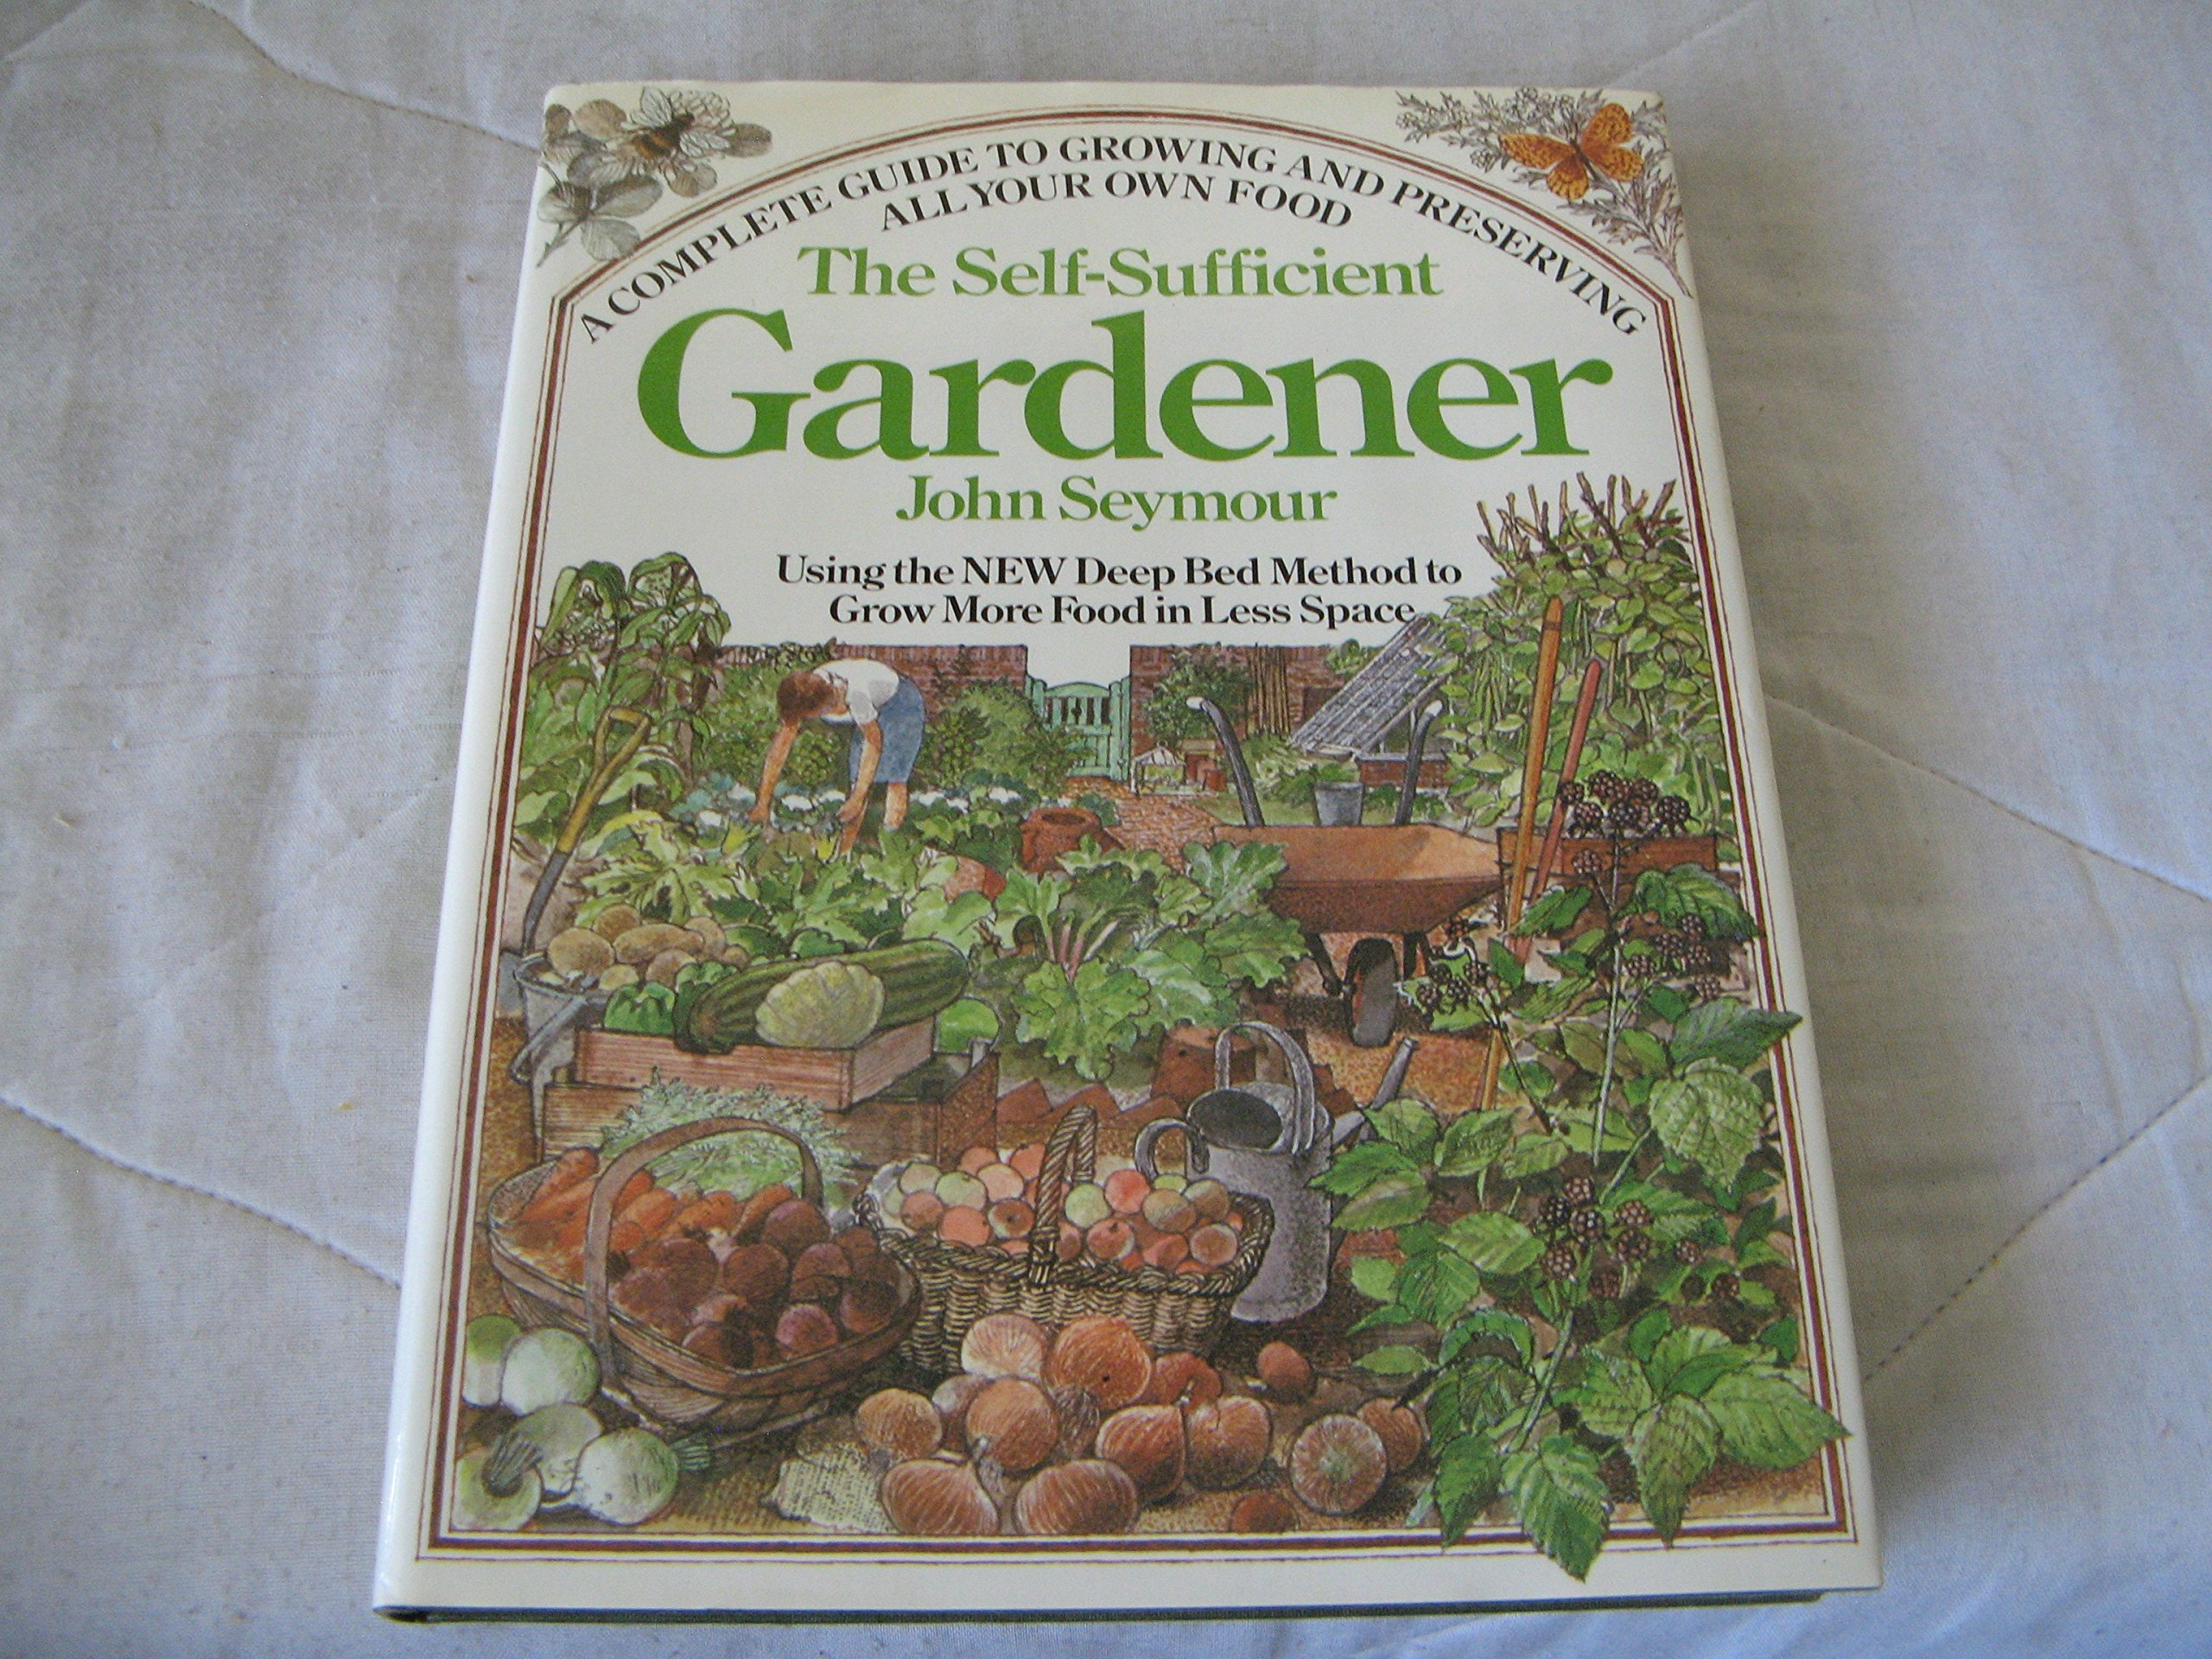 Self-sufficient gardener pdf the new